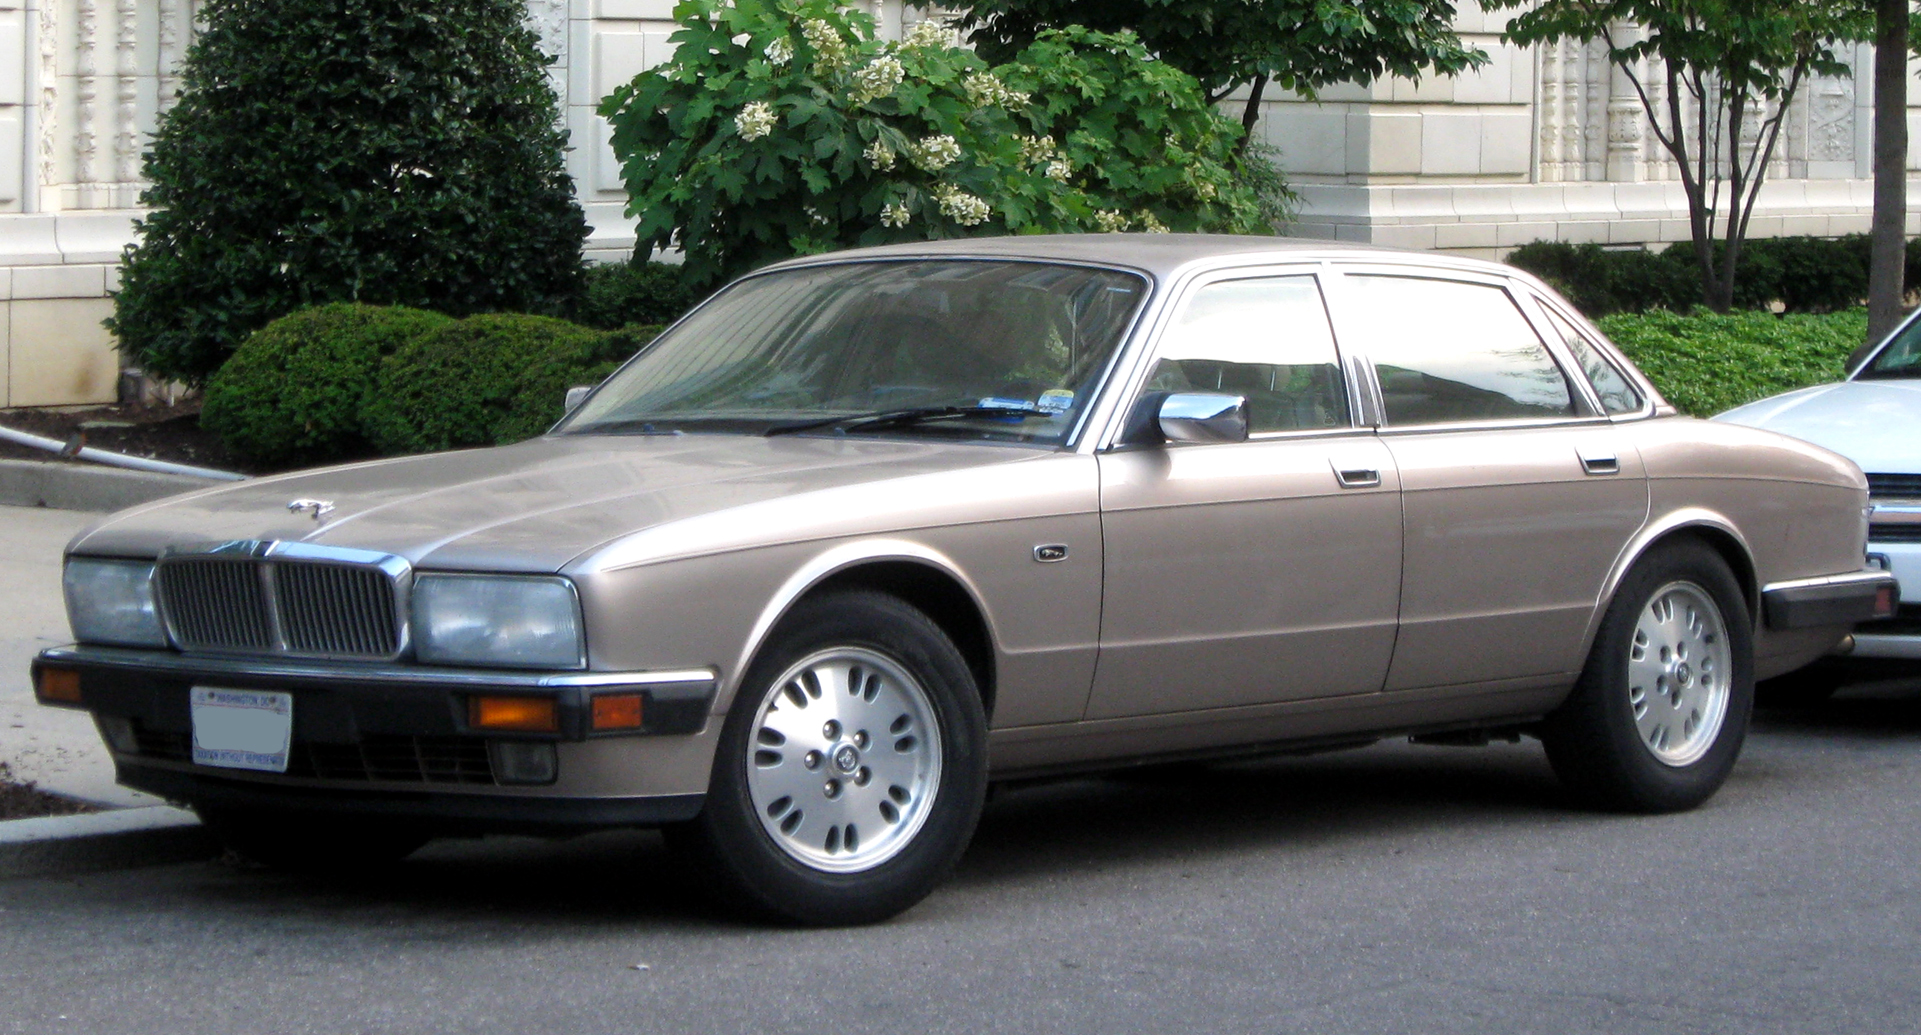 1993 Jaguar Xj-series #4